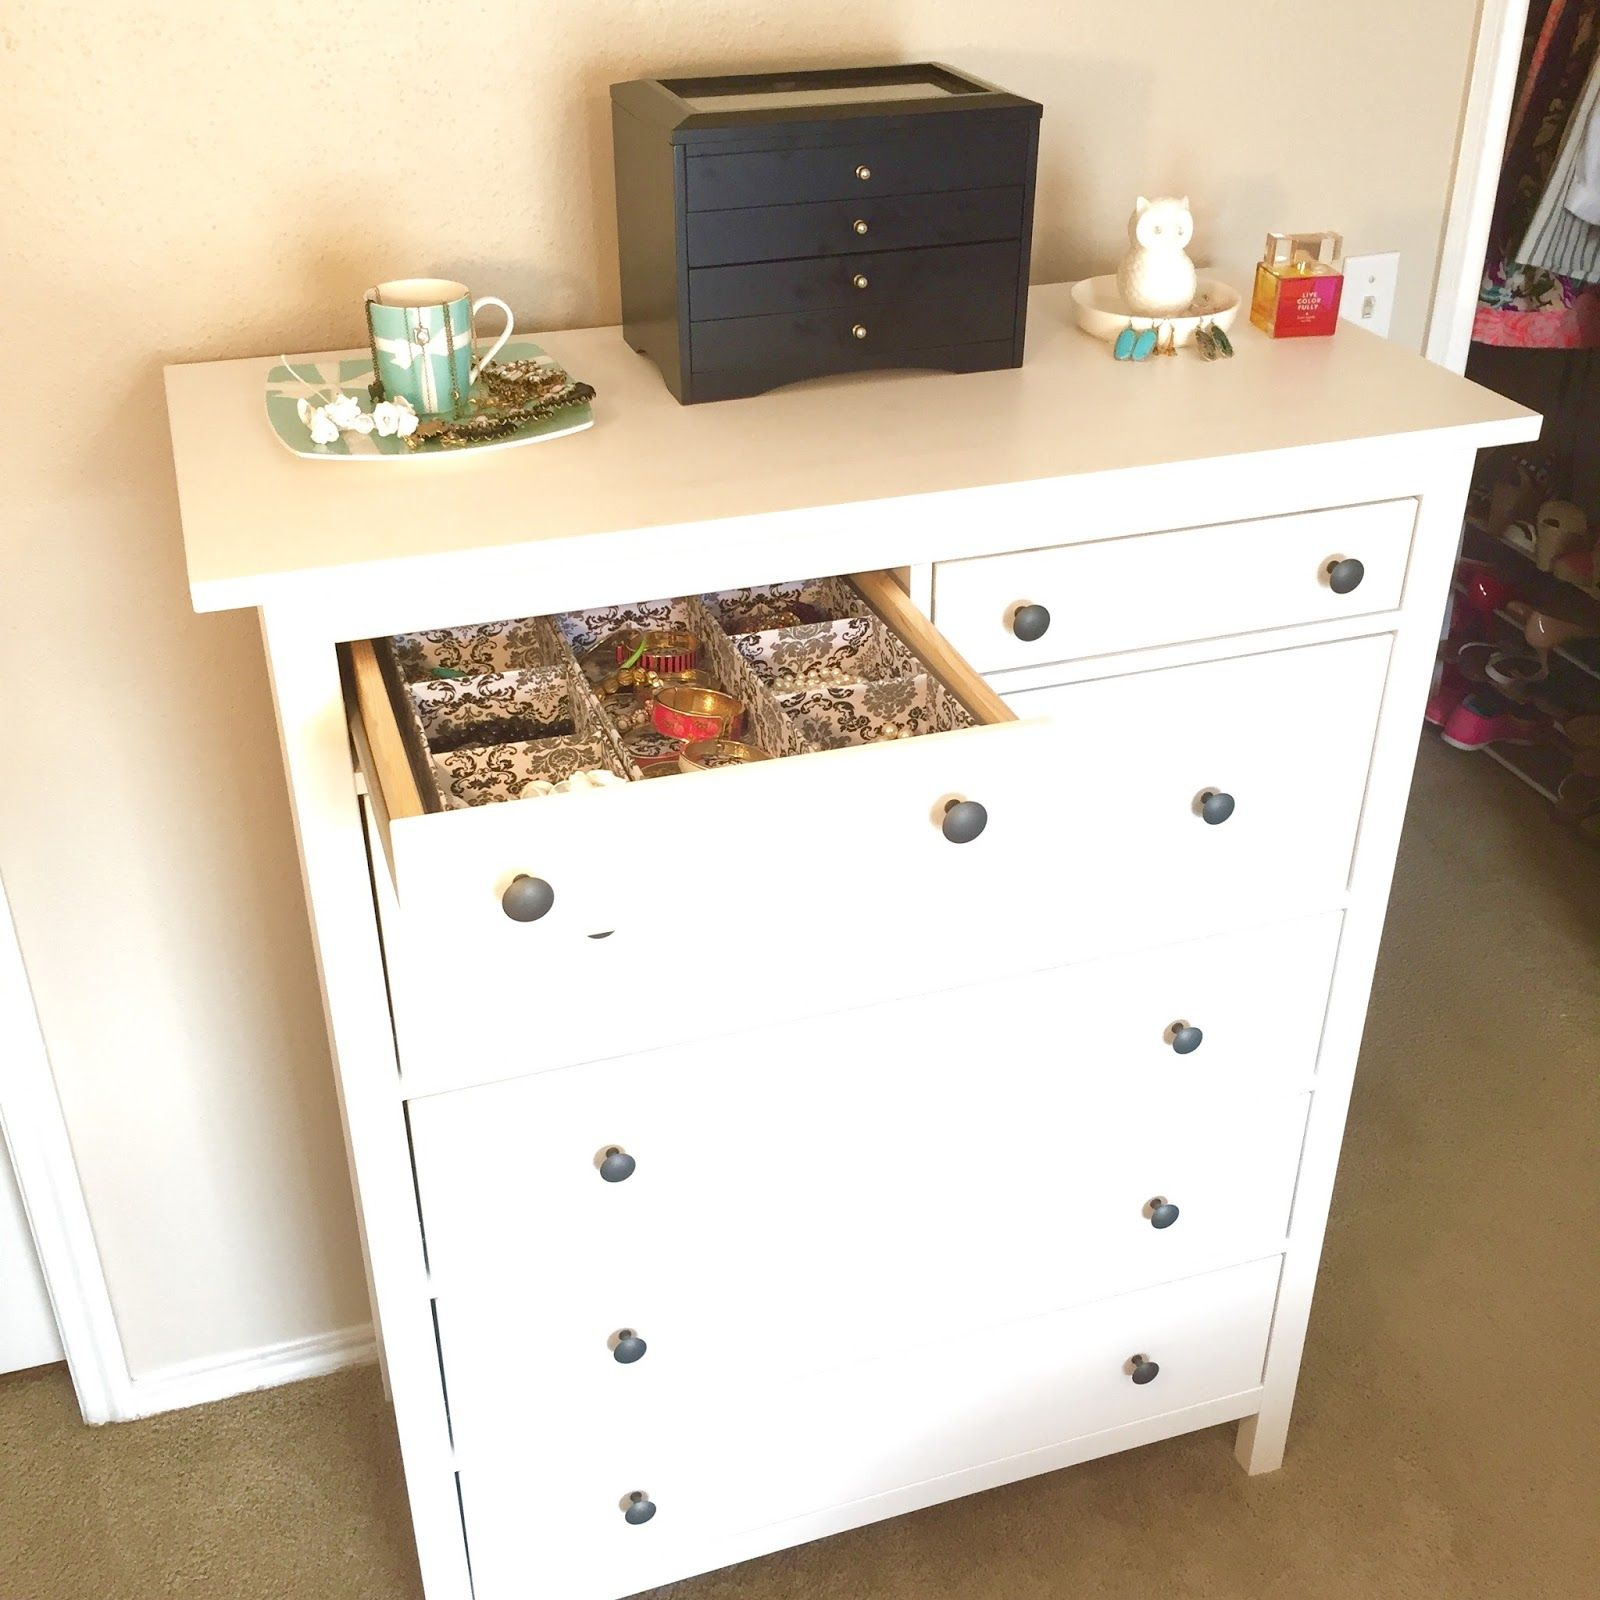 ikea hemnes 6 drawer chest review bedroom vanity ideas 11832 | c06260e5a92684cd06648984fc9985e2